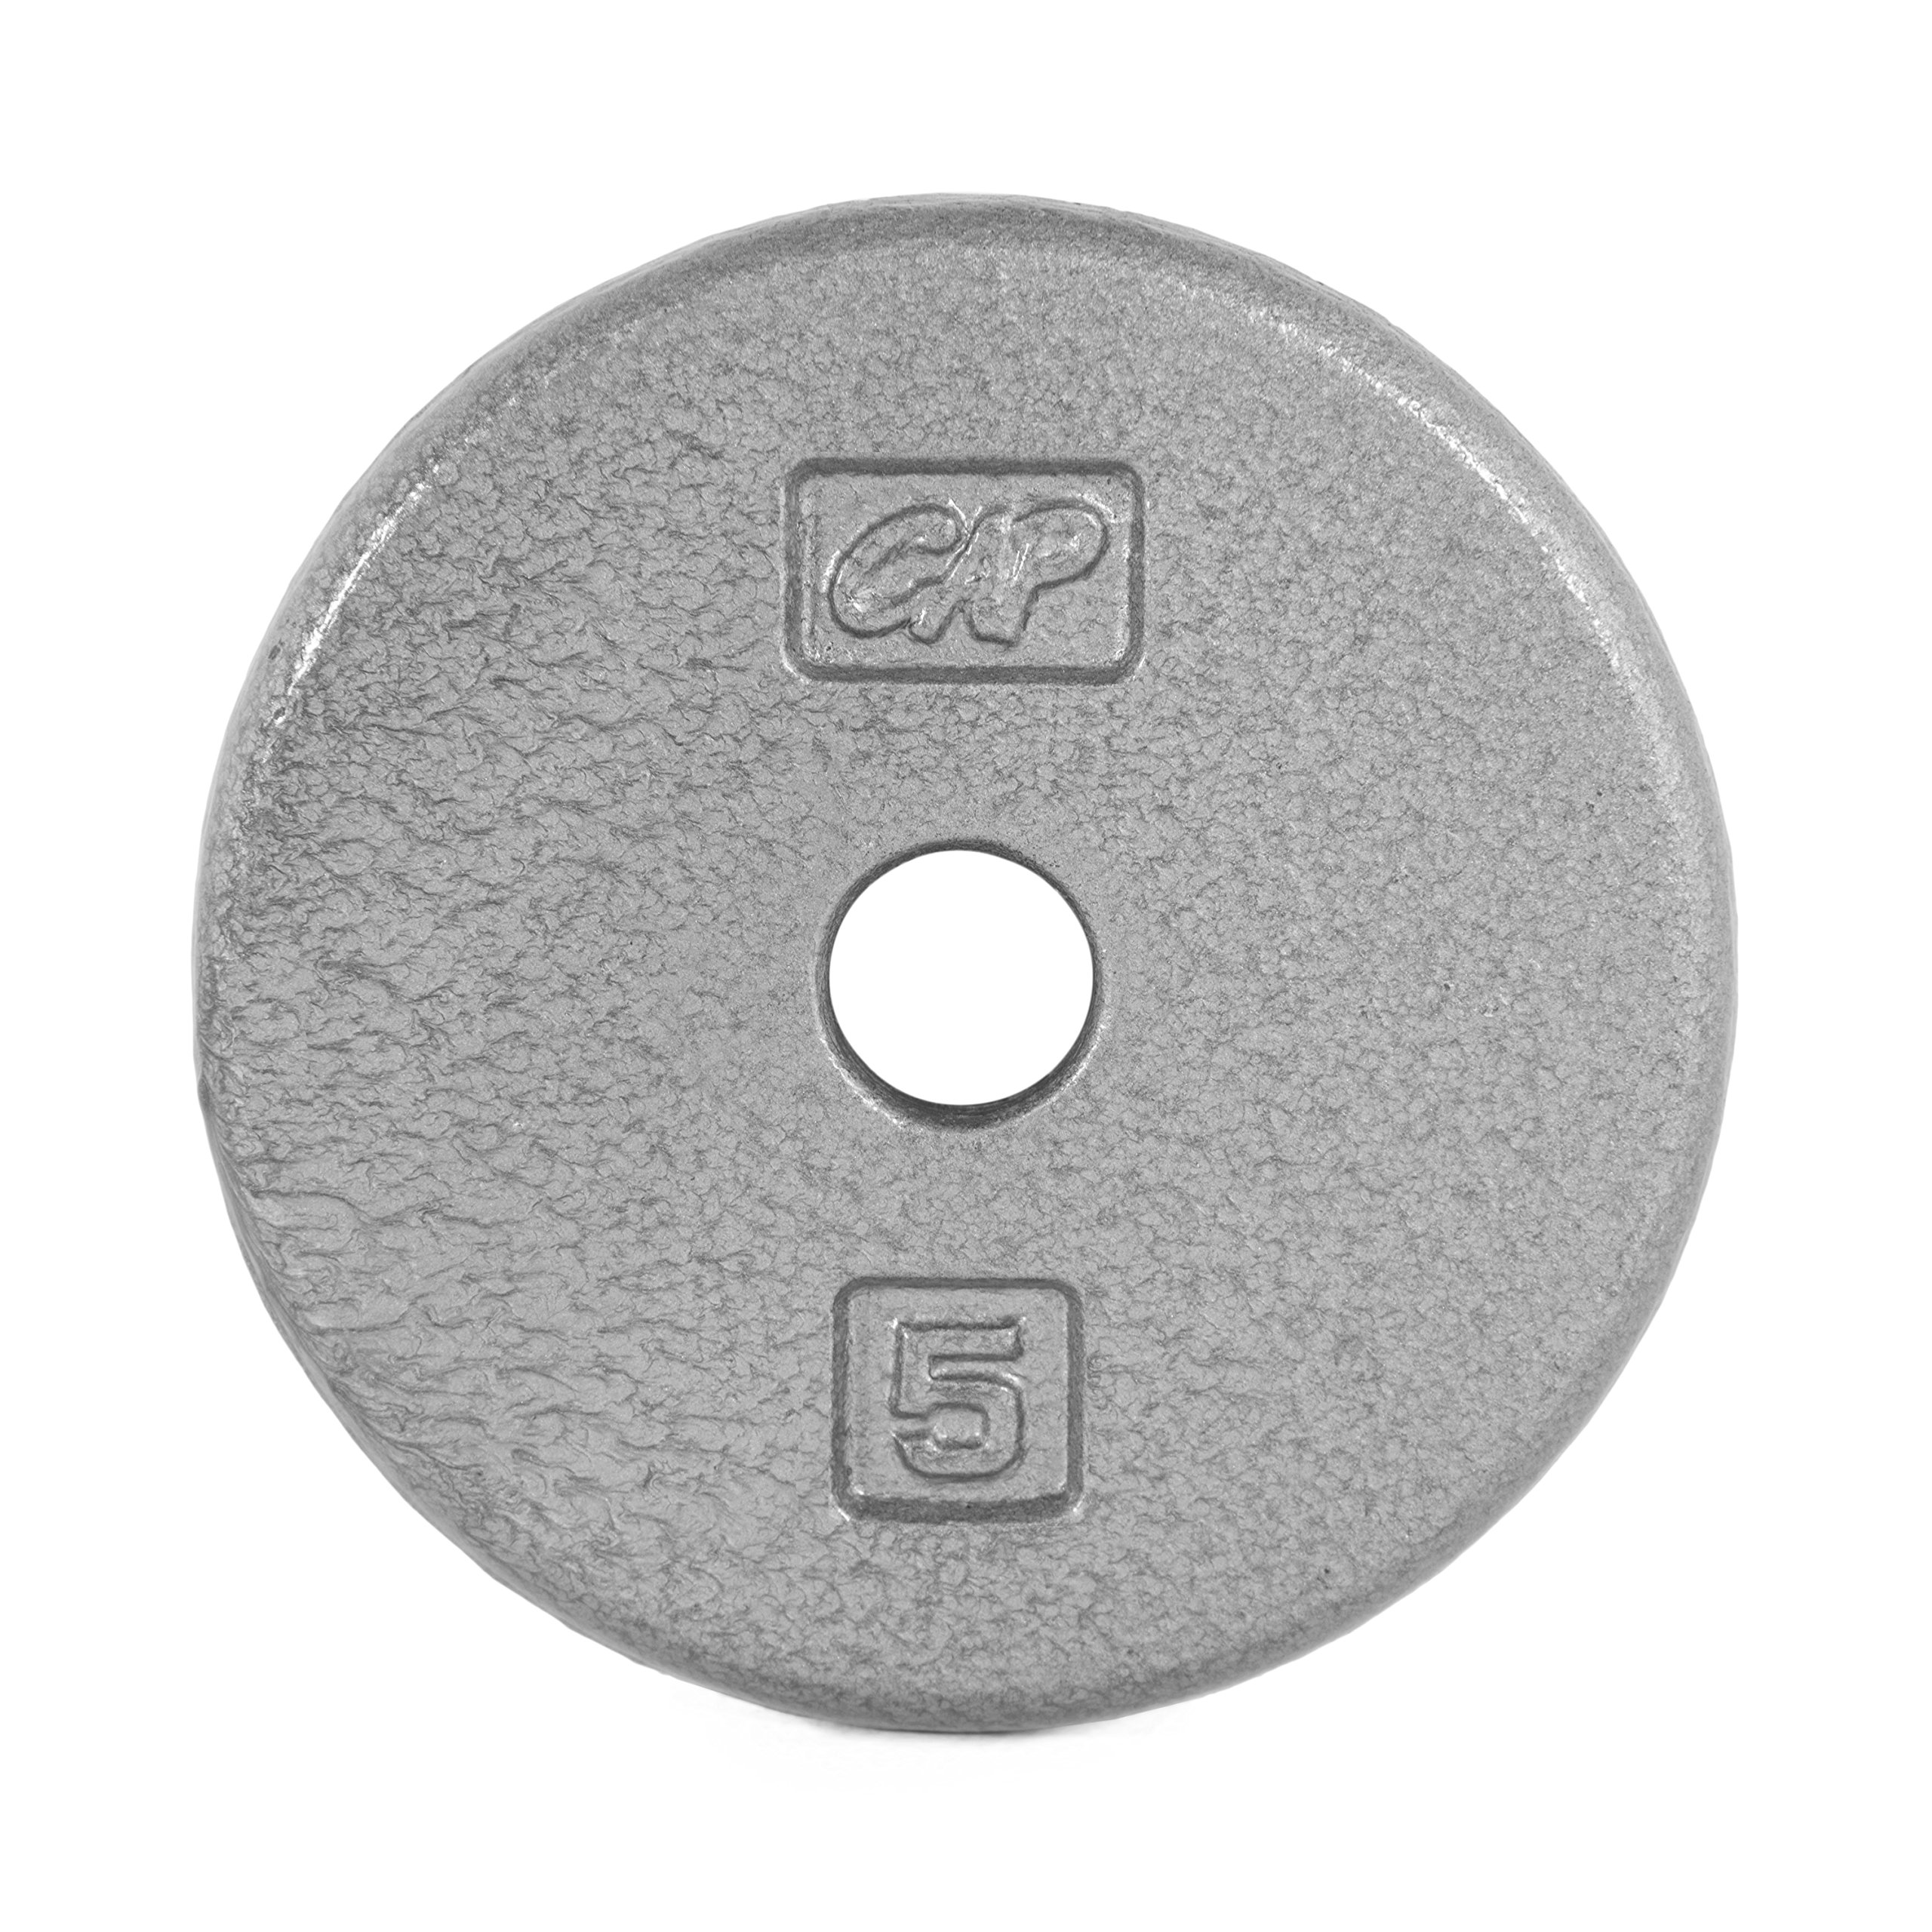 CAP Barbell Cast Iron Standard 1-Inch Weight Plates, Gray, Single, 5 Pound